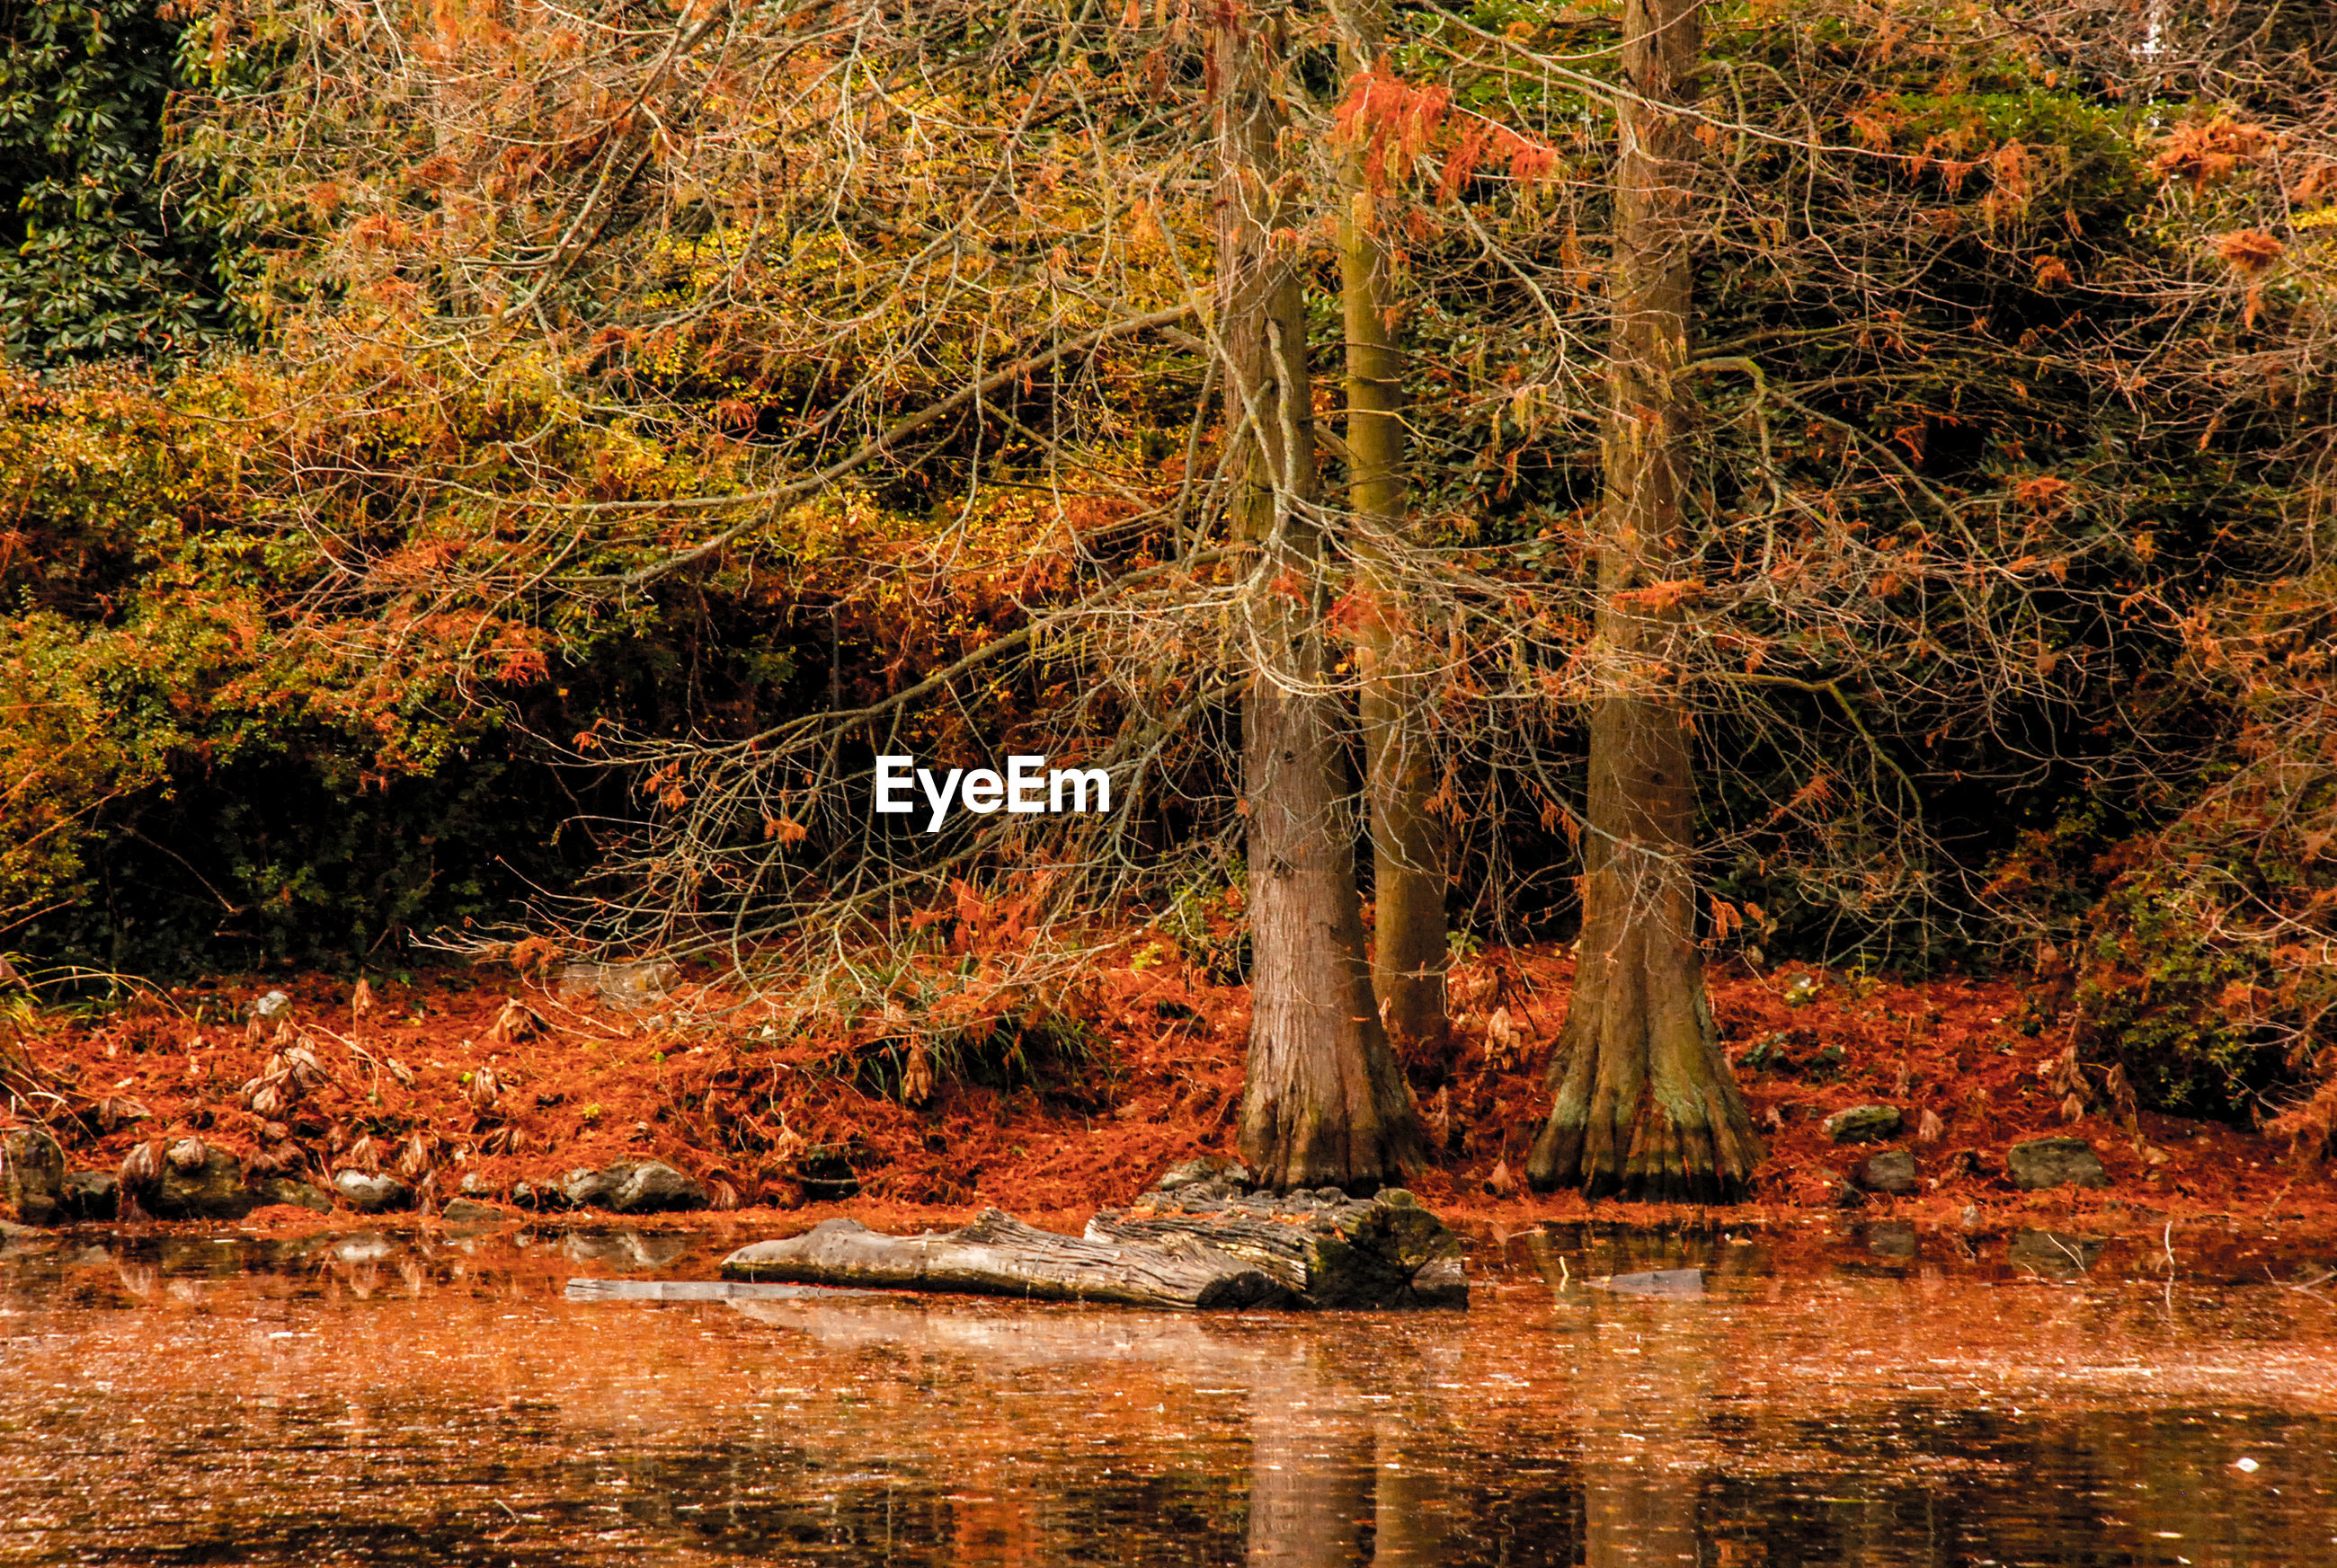 Bare trees on field by lake during autumn